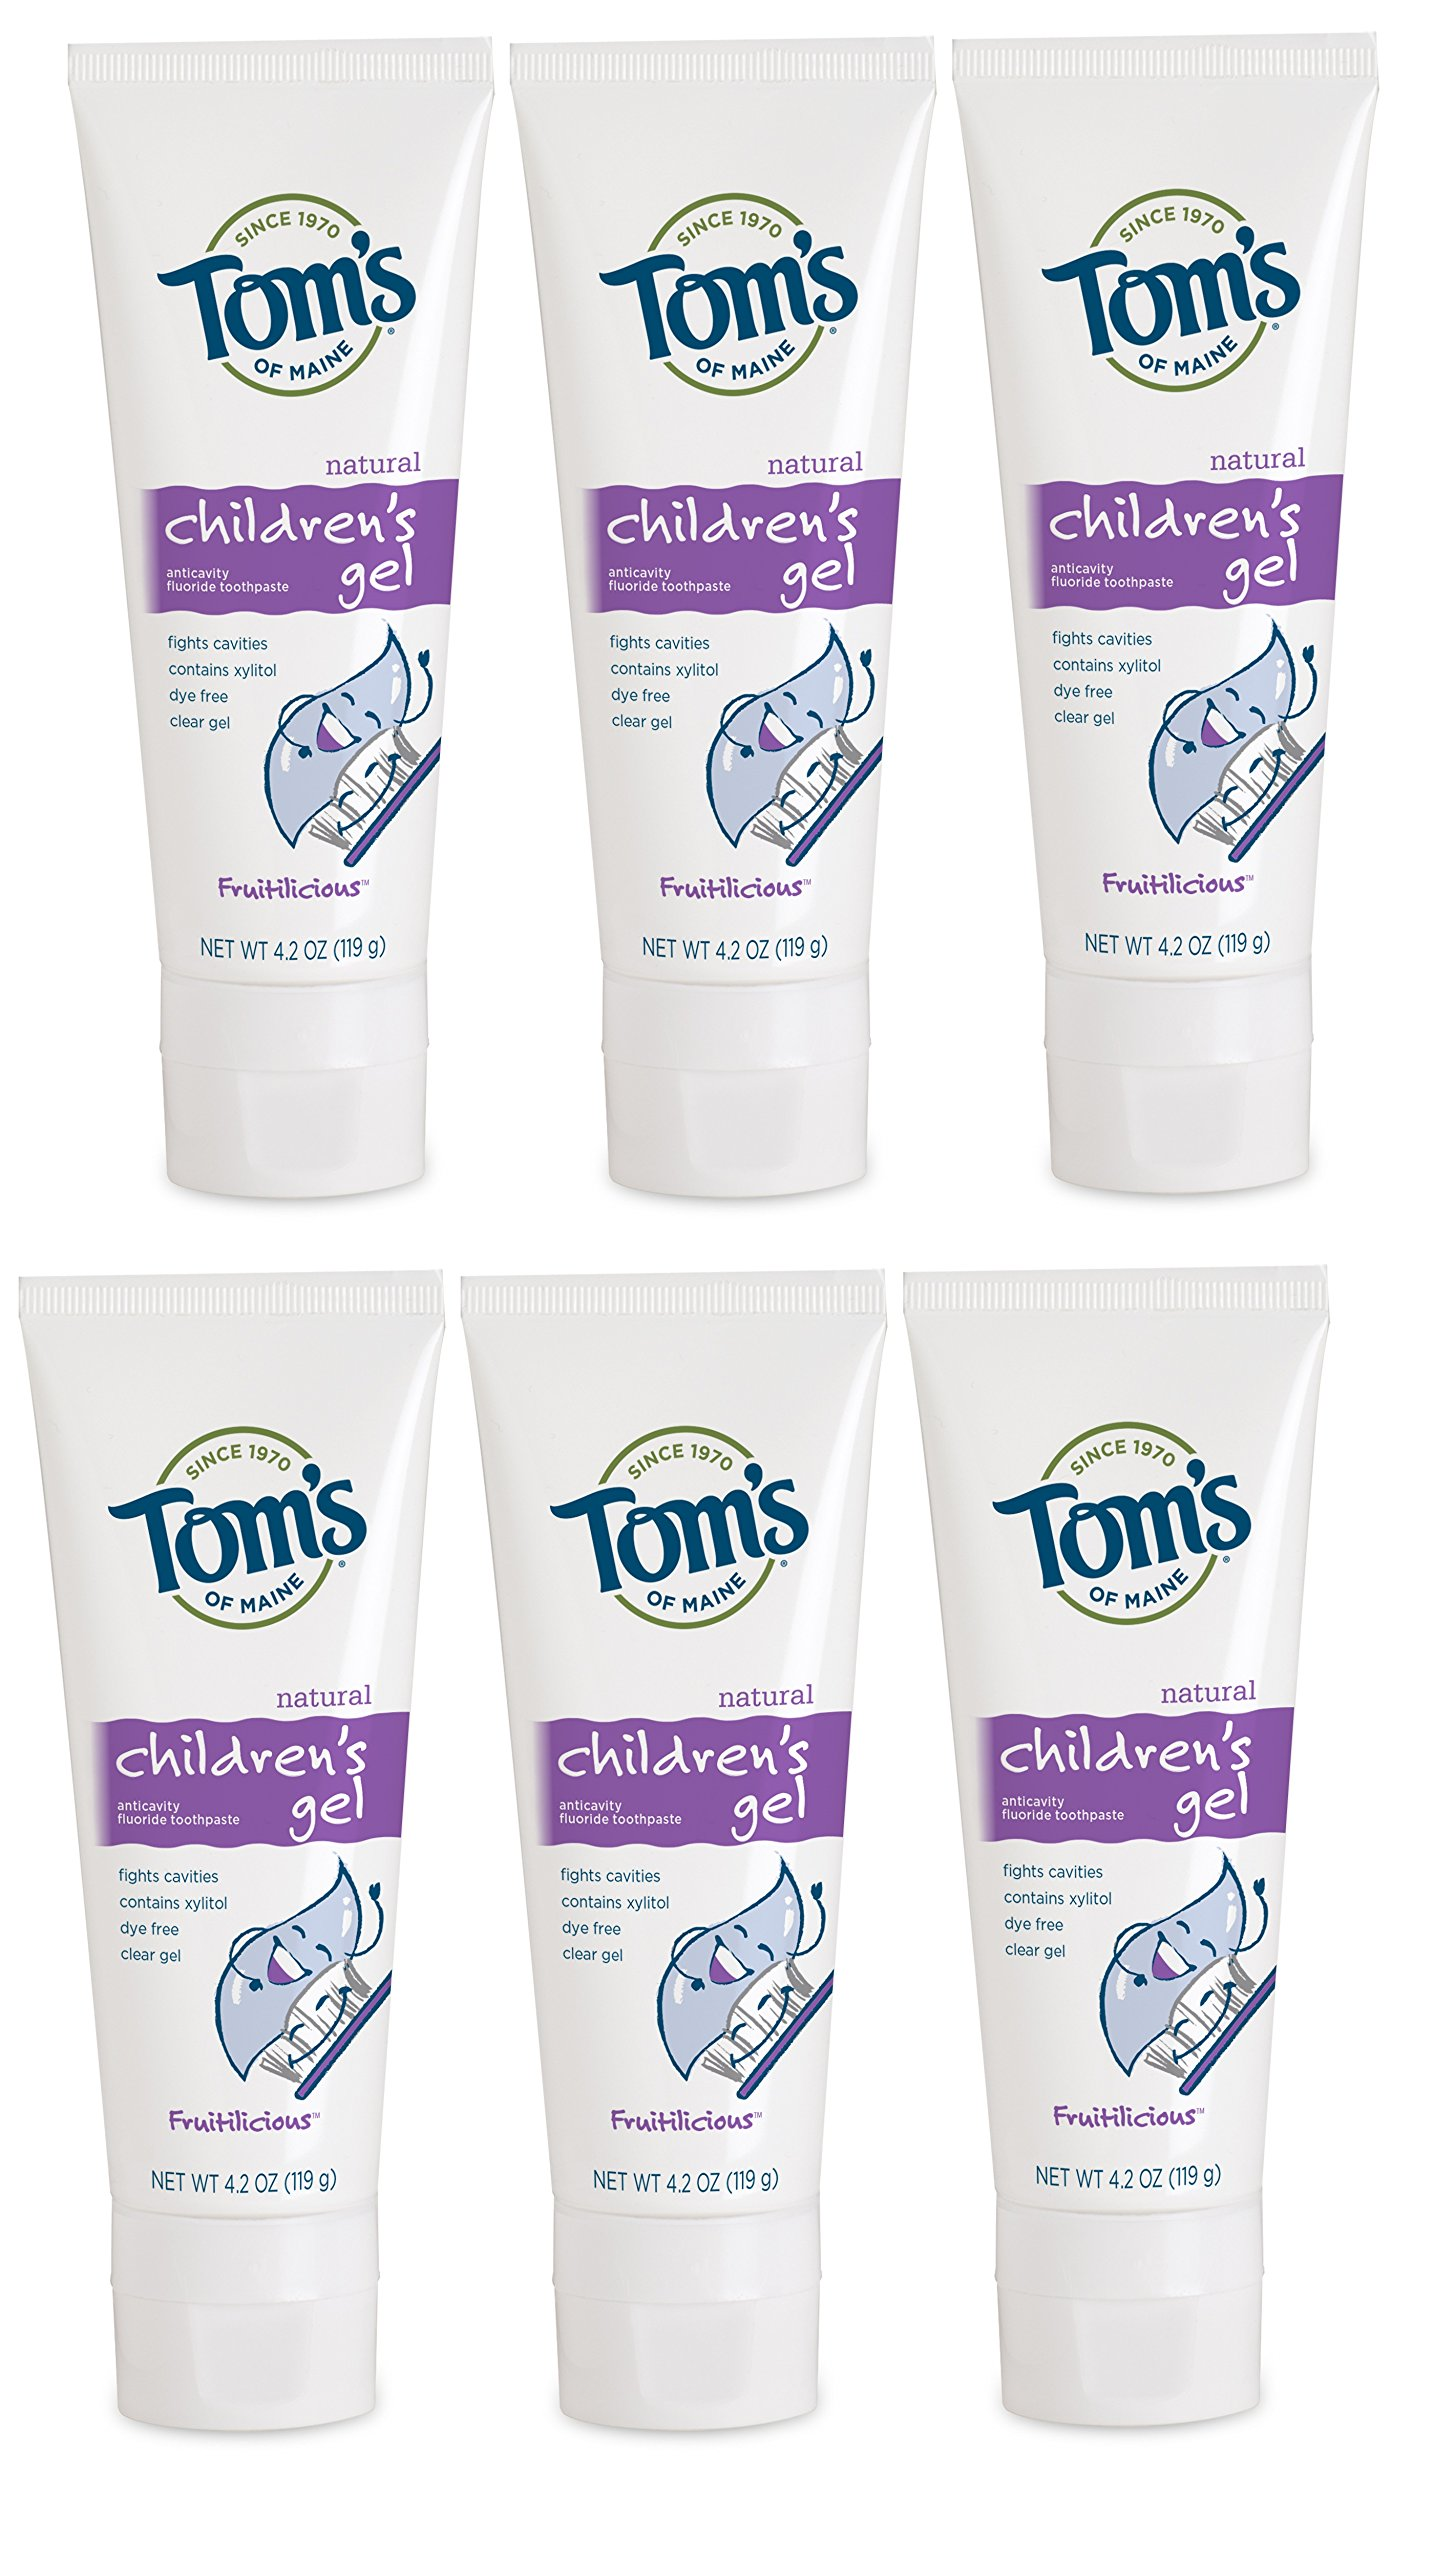 Tom's of Maine Natural Children's Fruitilicious Fluoride Anticavity Gel, 4.2 Ounce (6 count)